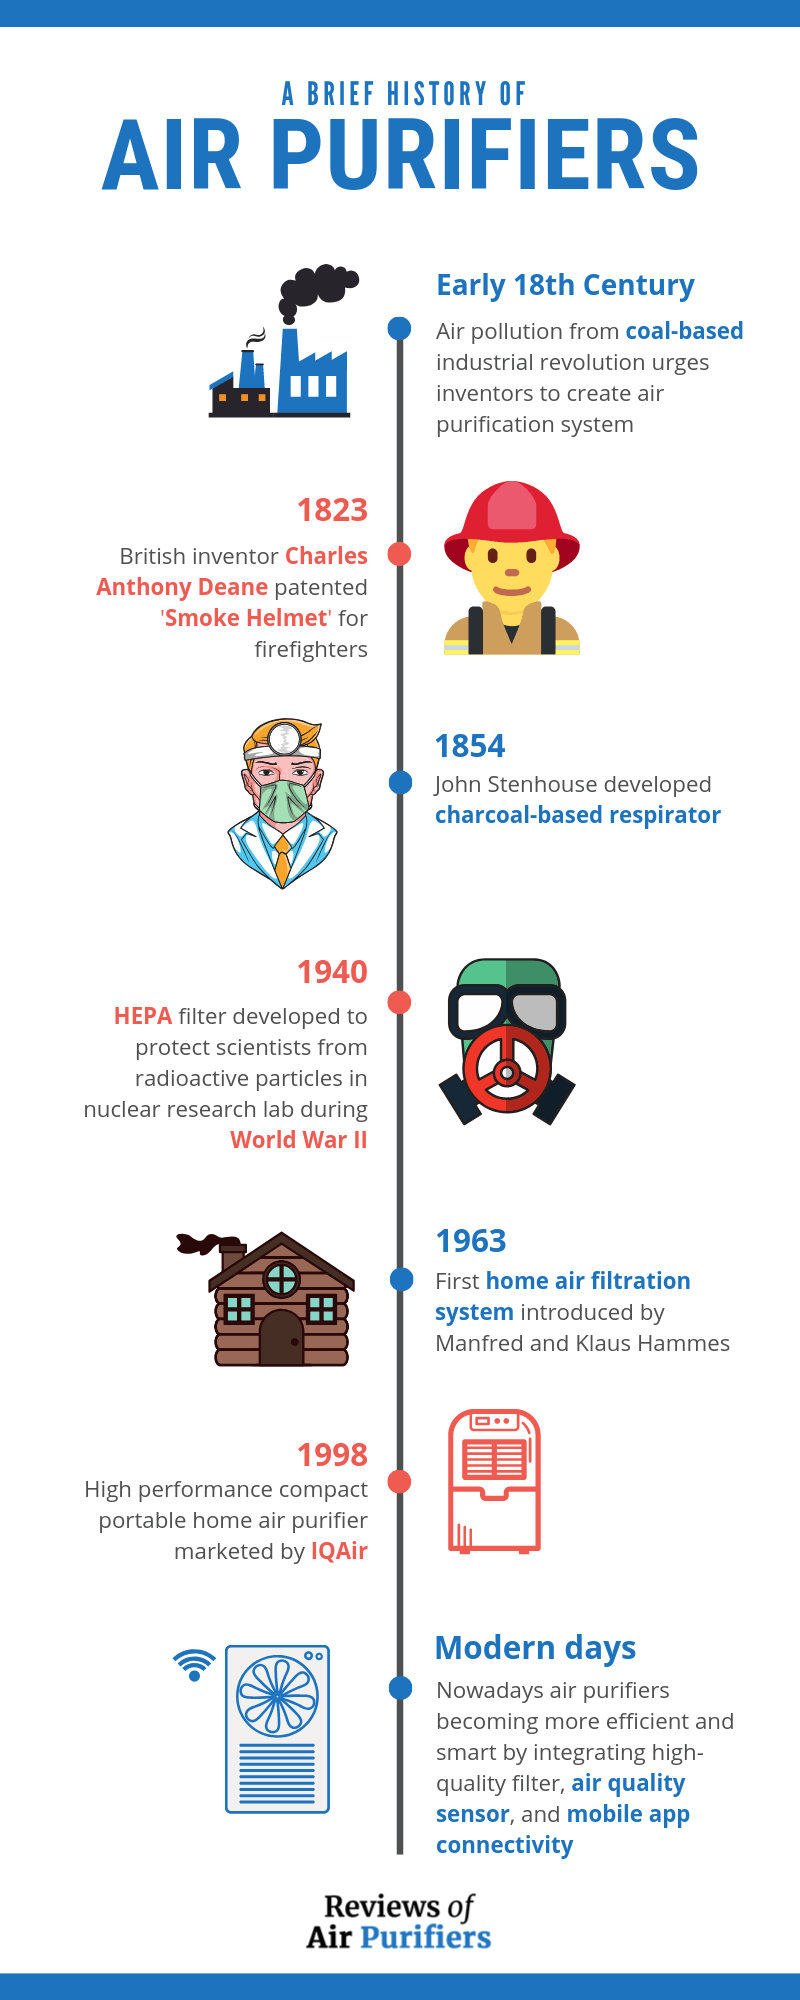 History of Air Purifiers